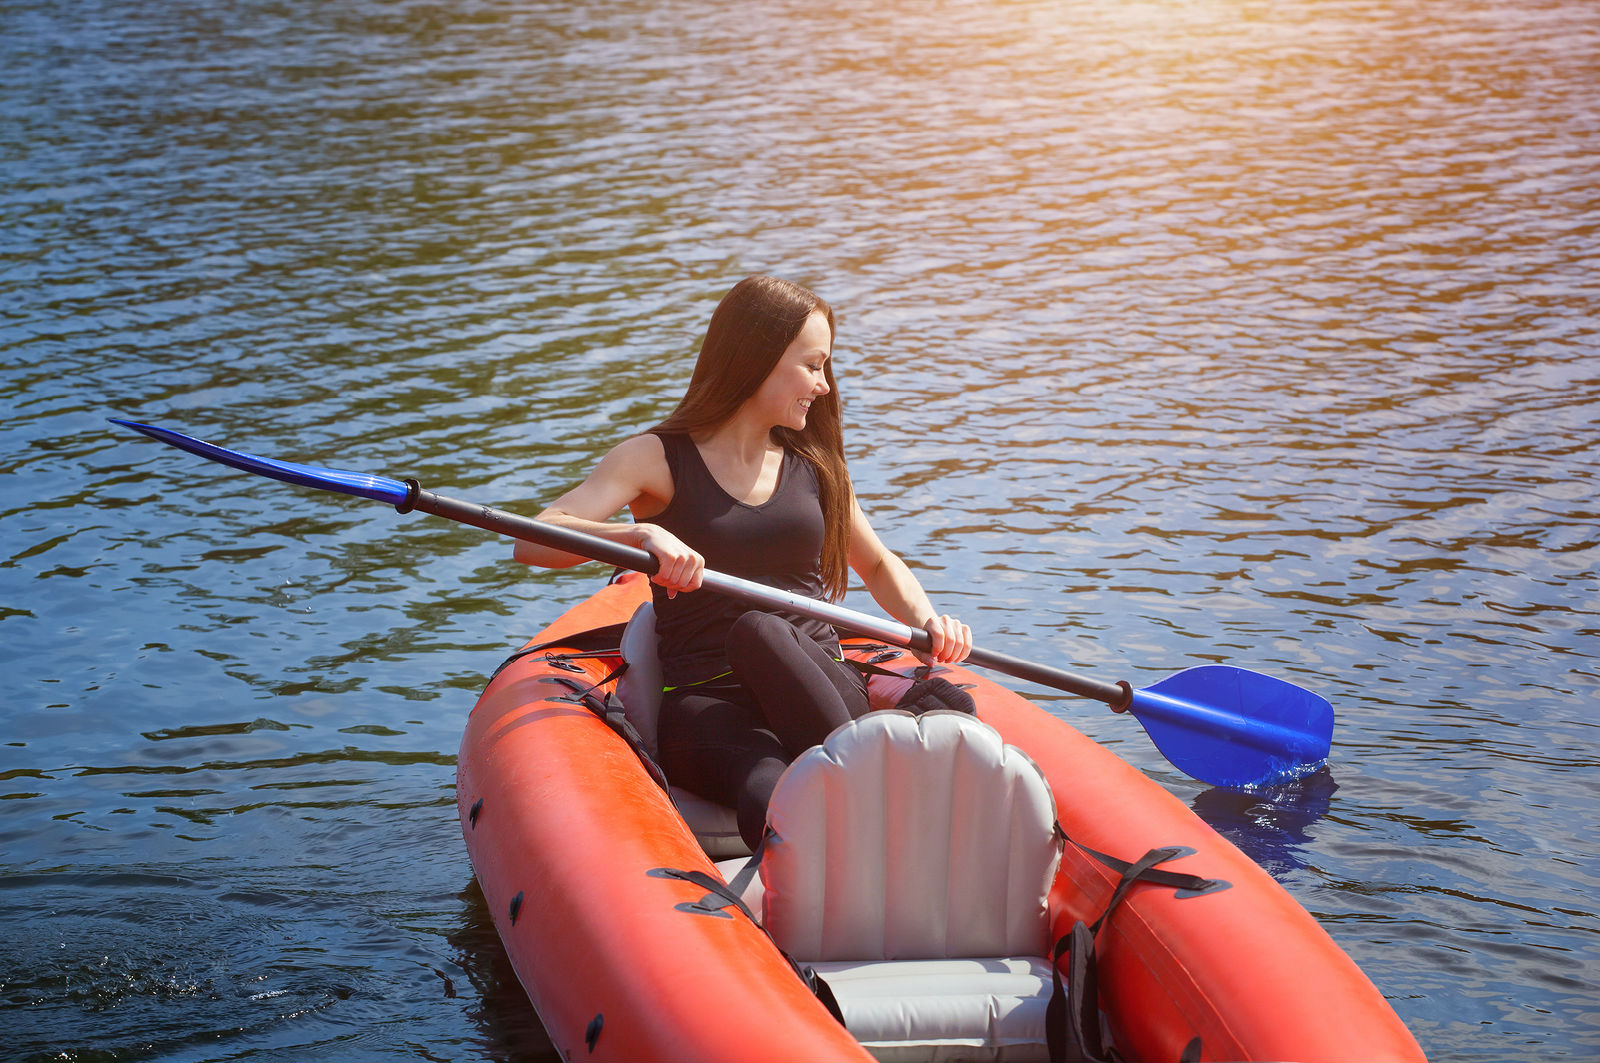 Ready To Go Boating? Ensure Safety With These Tips!